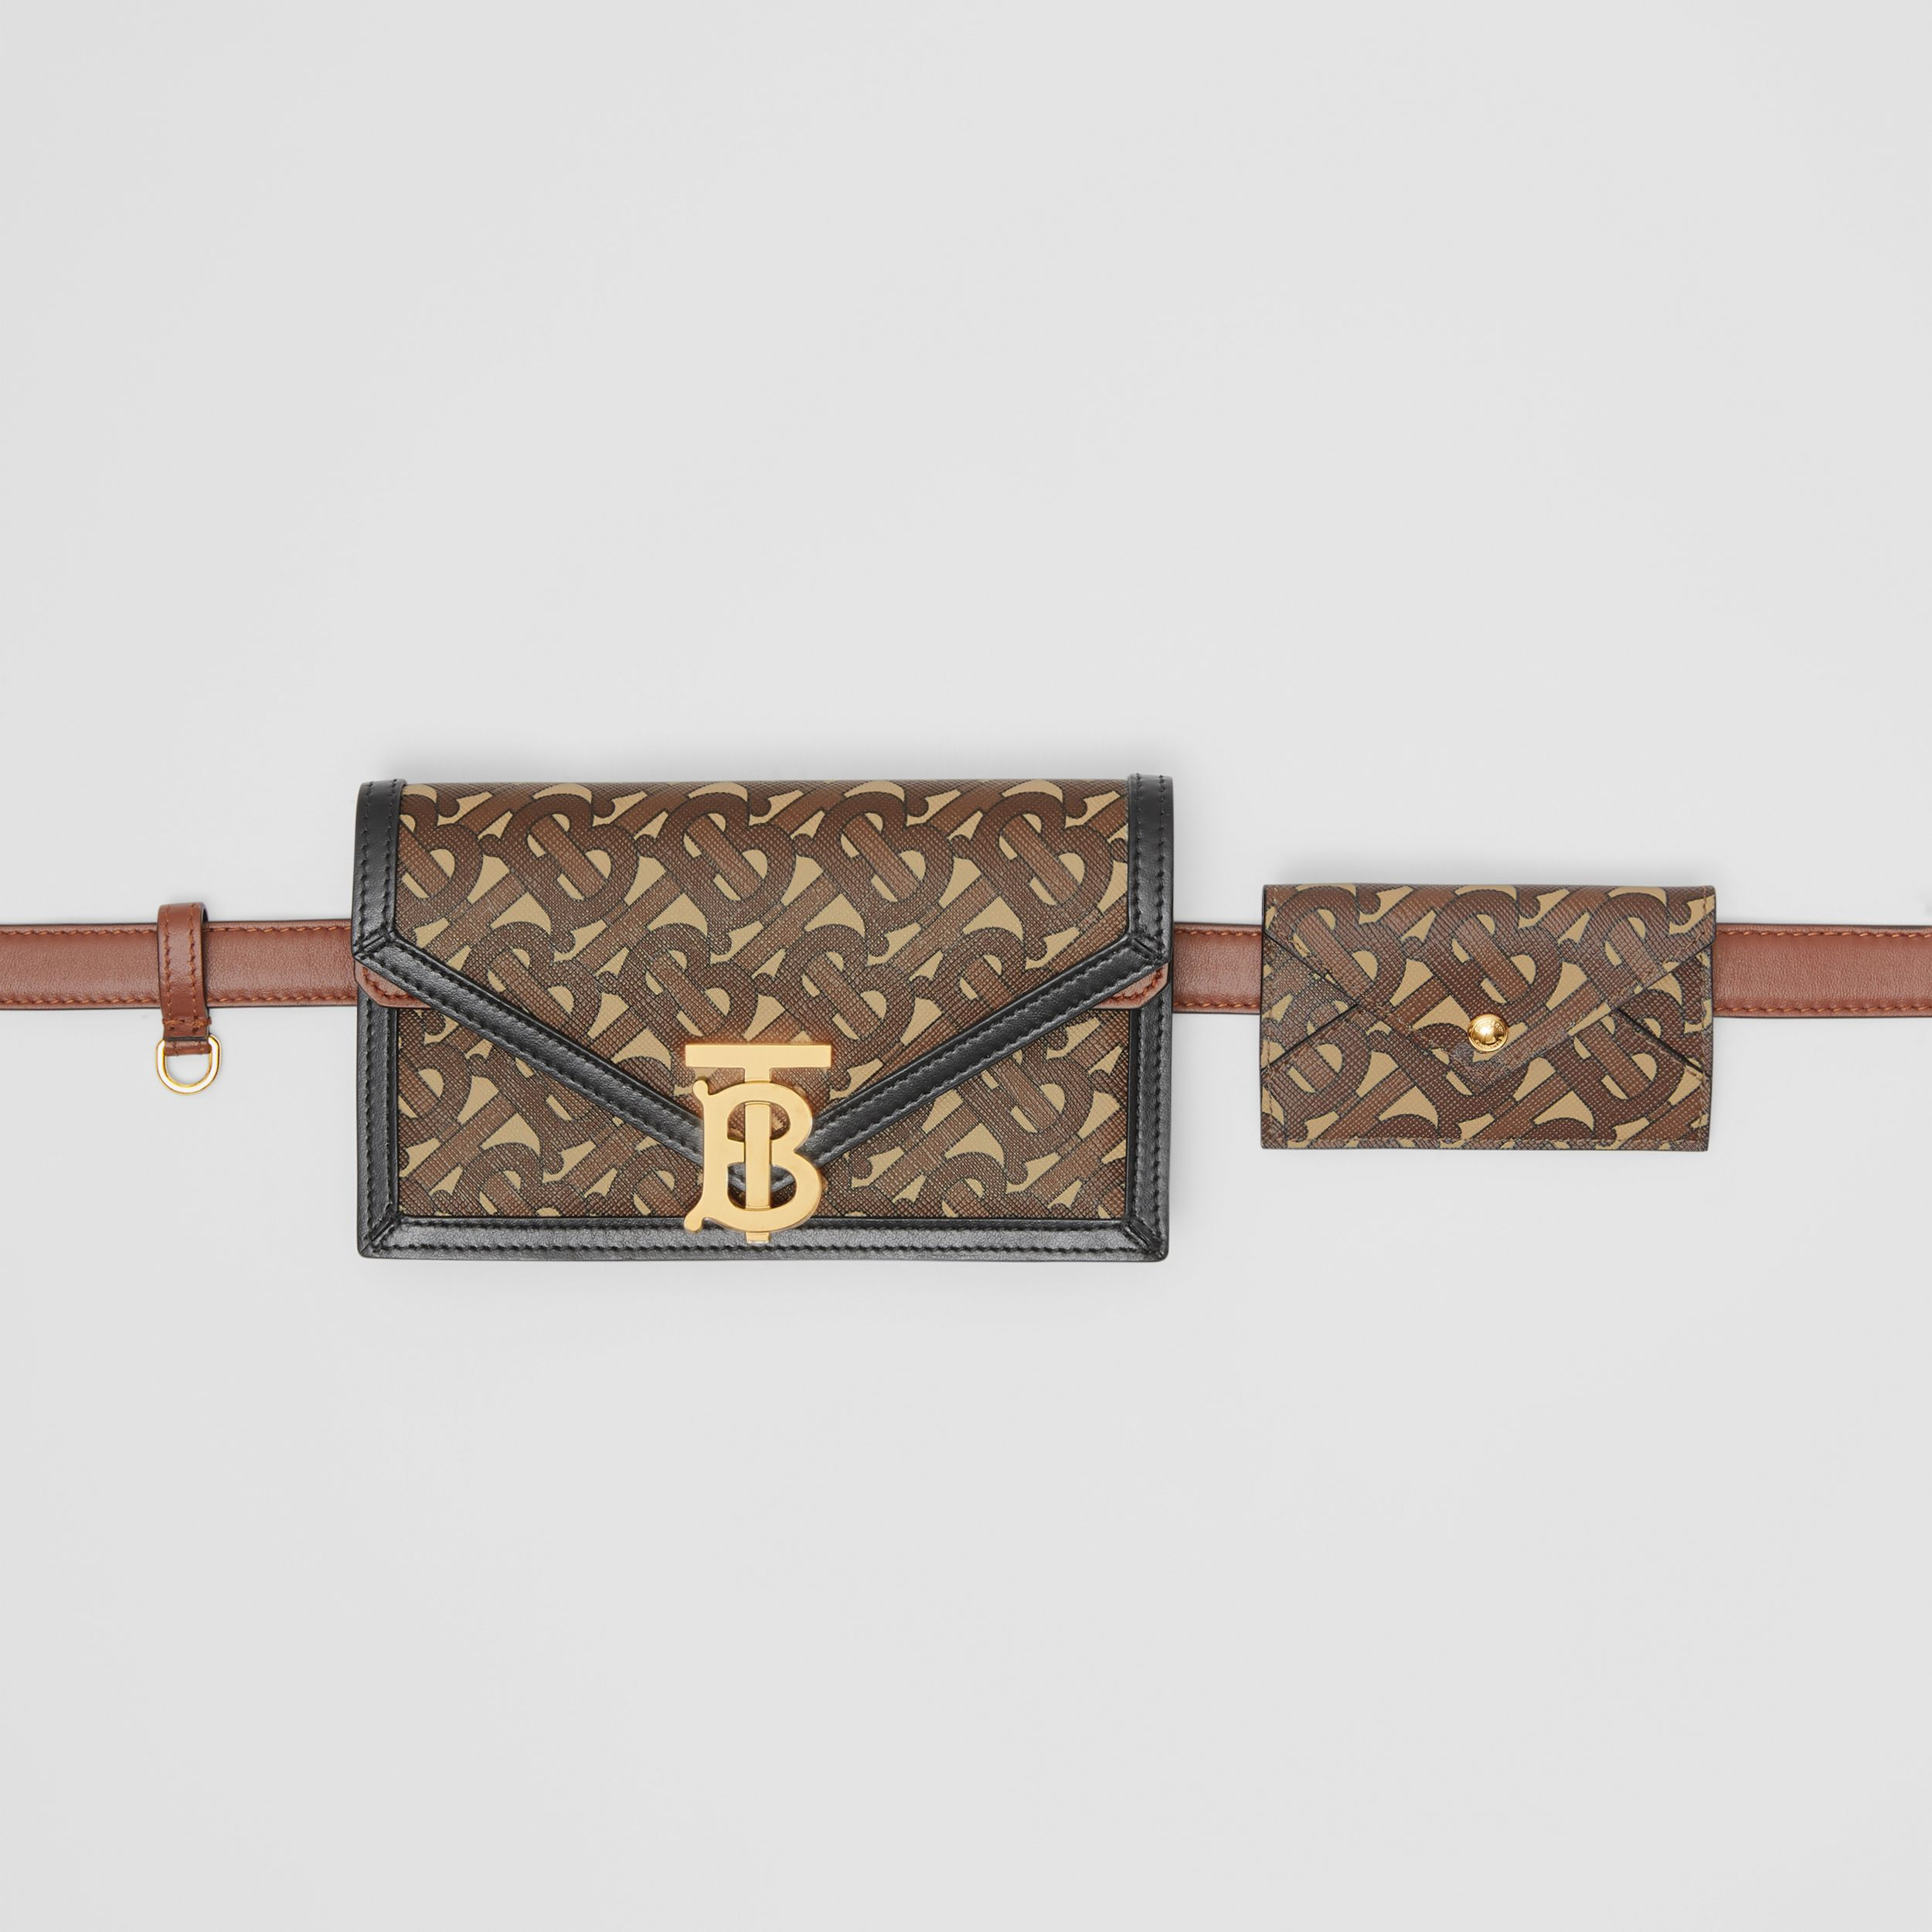 Belted Monogram E-canvas TB Envelope Clutch in Bridle Brown - Women | Burberry - 3